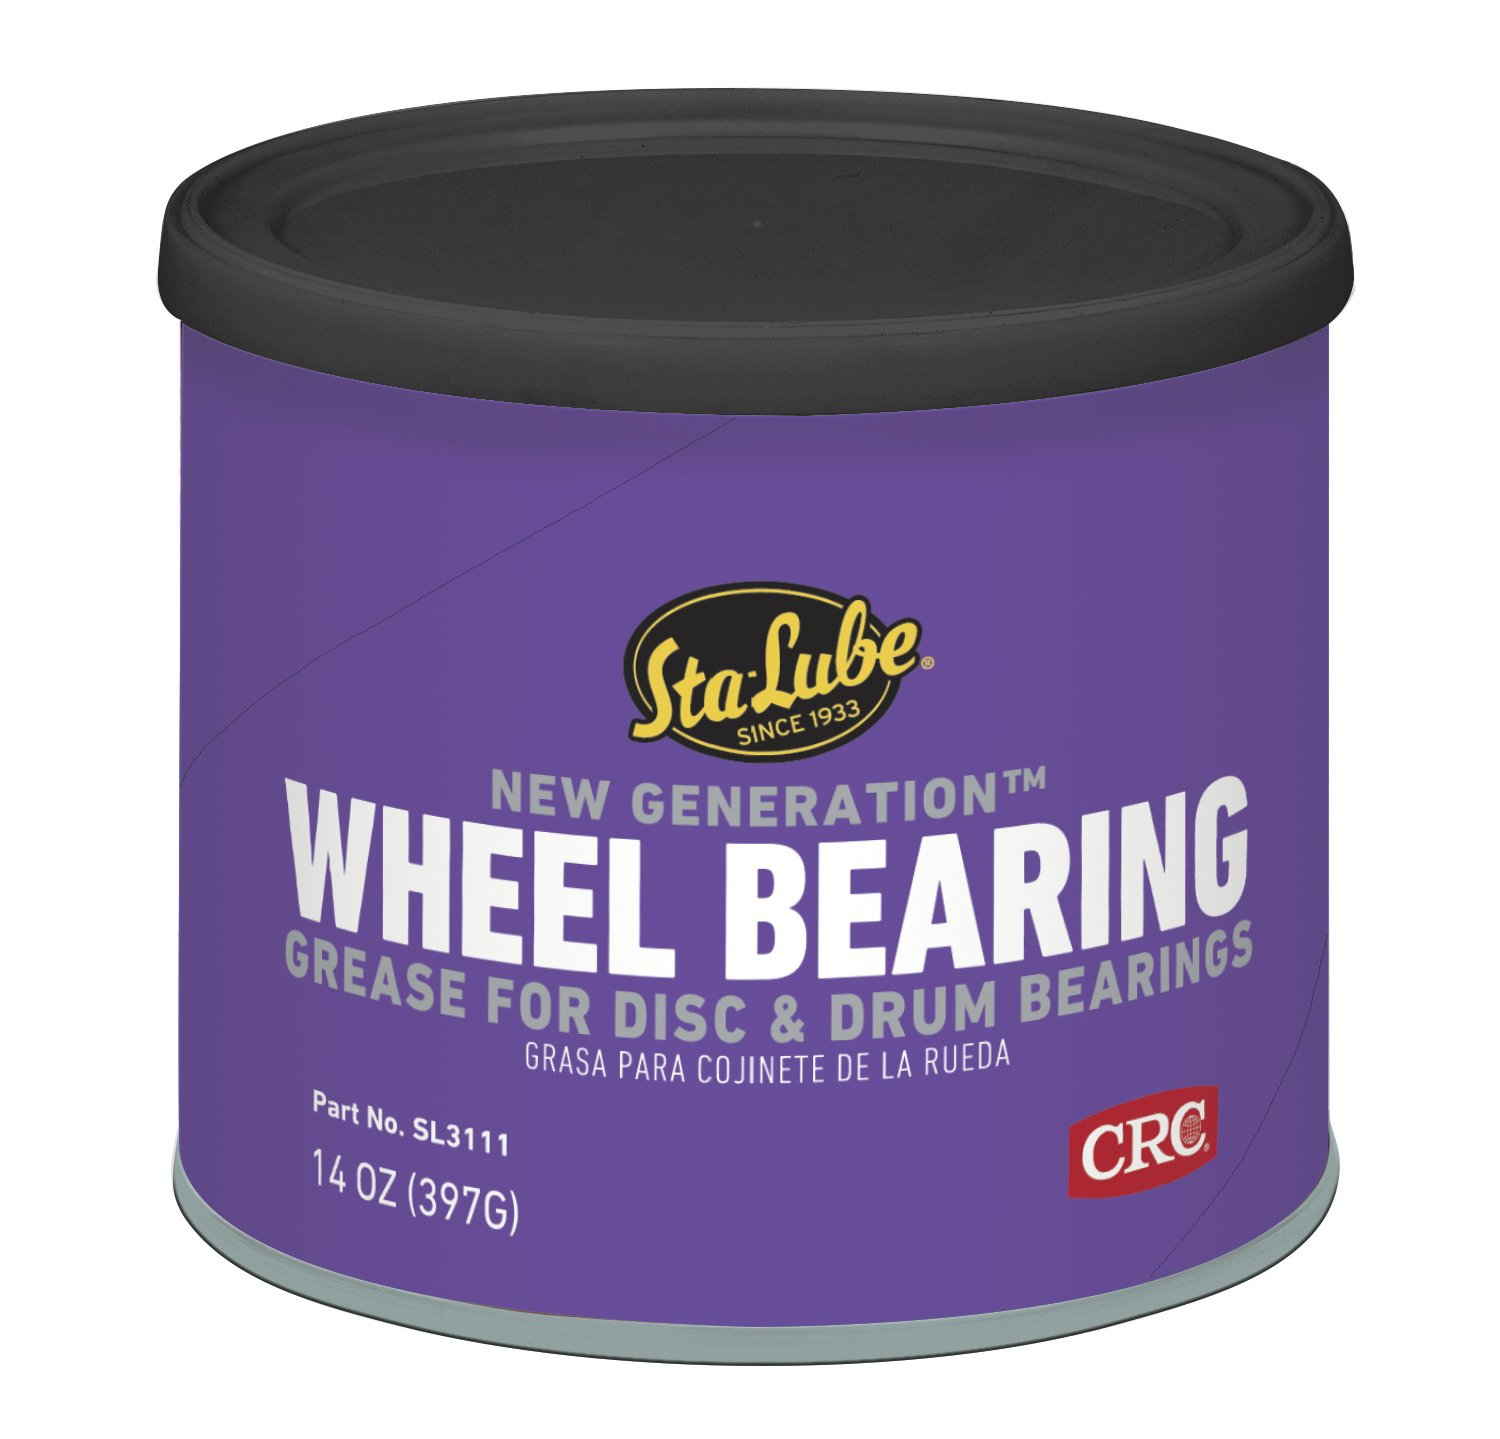 Sta-Lube SL3111 New Generation Wheel Bearing Grease for Disc and Drum Brakes - 14 wt. oz.